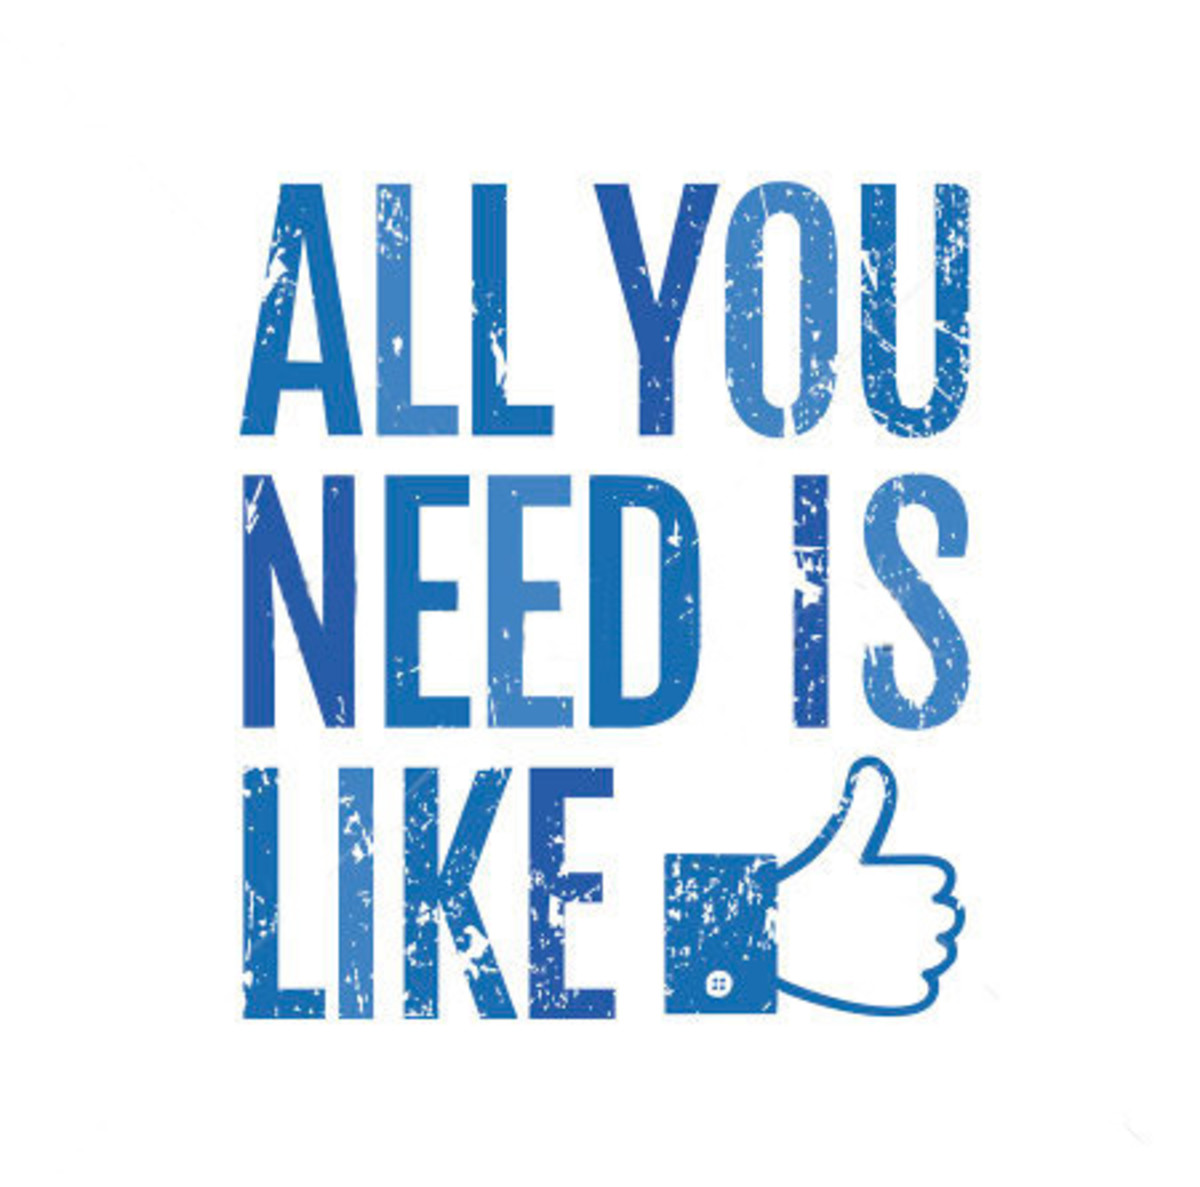 It's true! All you really need are lots of real likes to get better page ranking.